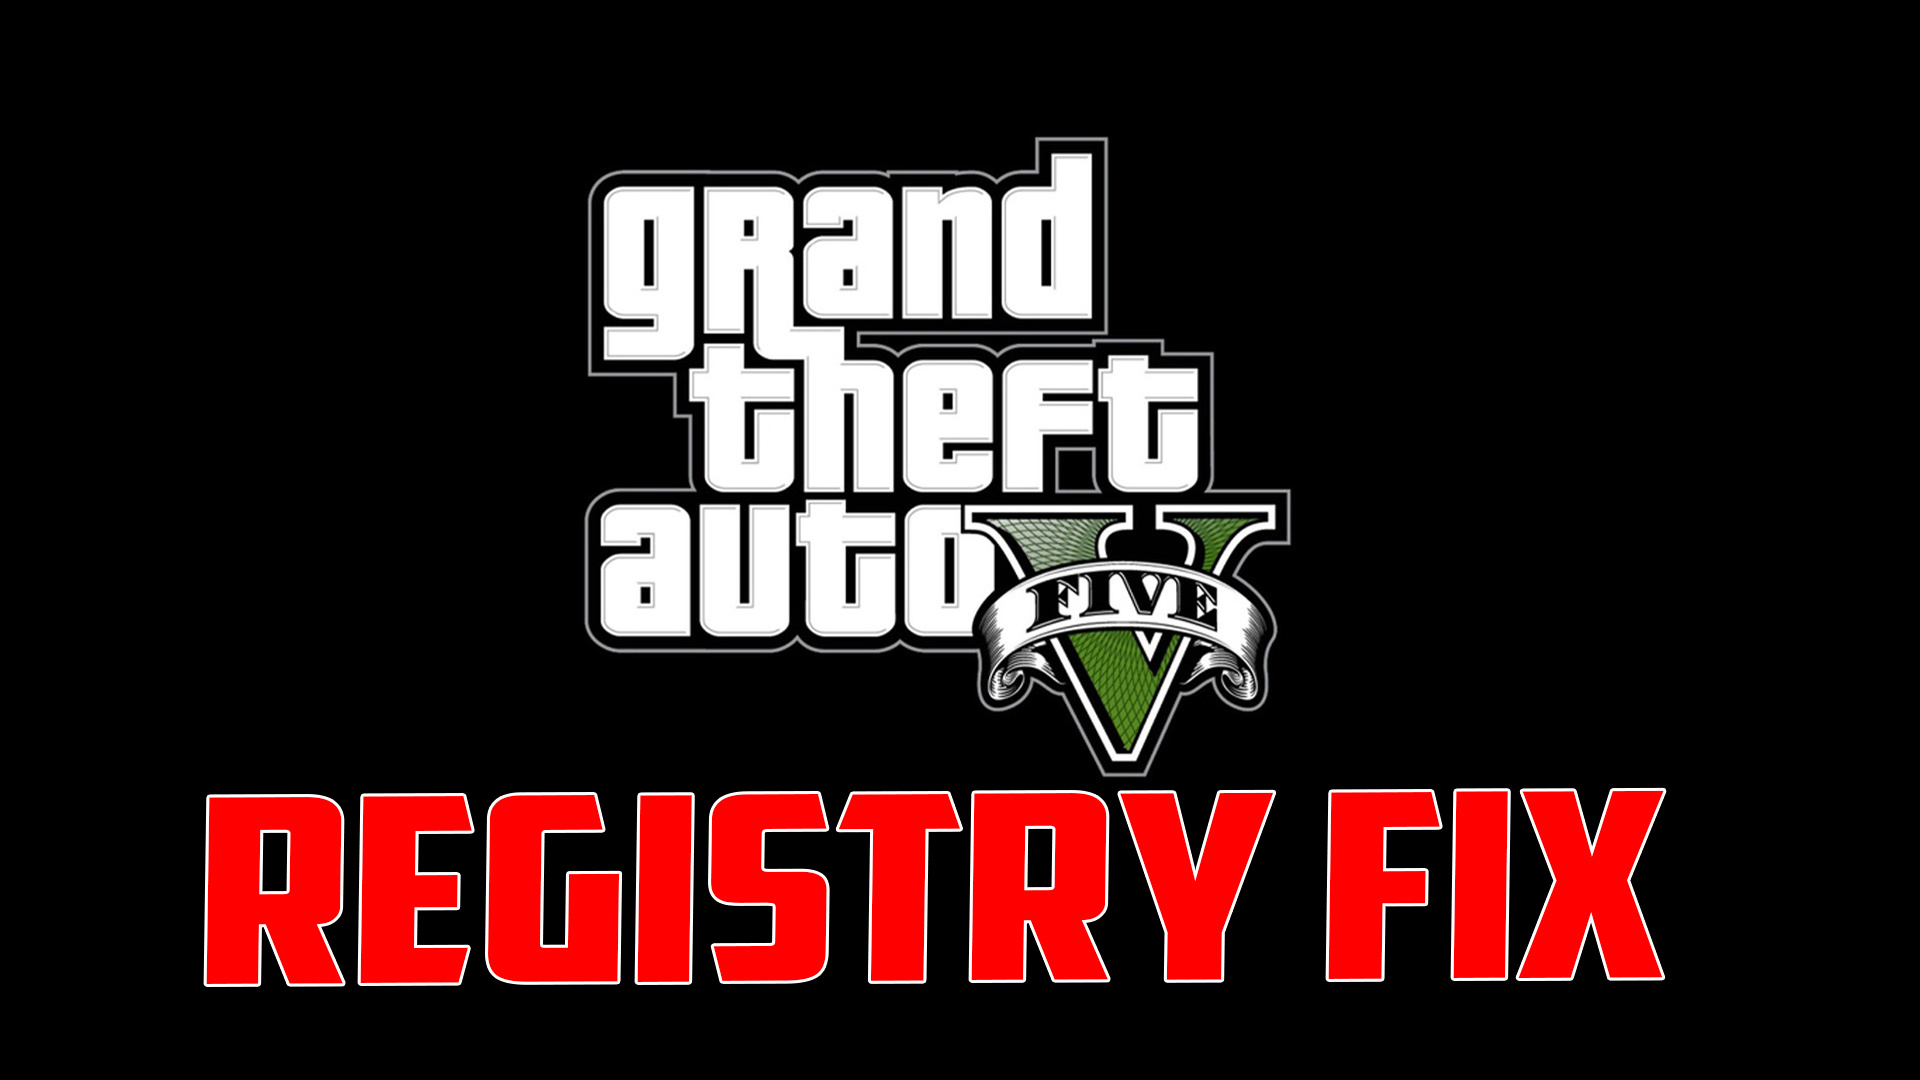 Grand Theft Auto V Registry Fix - GTA5-Mods com